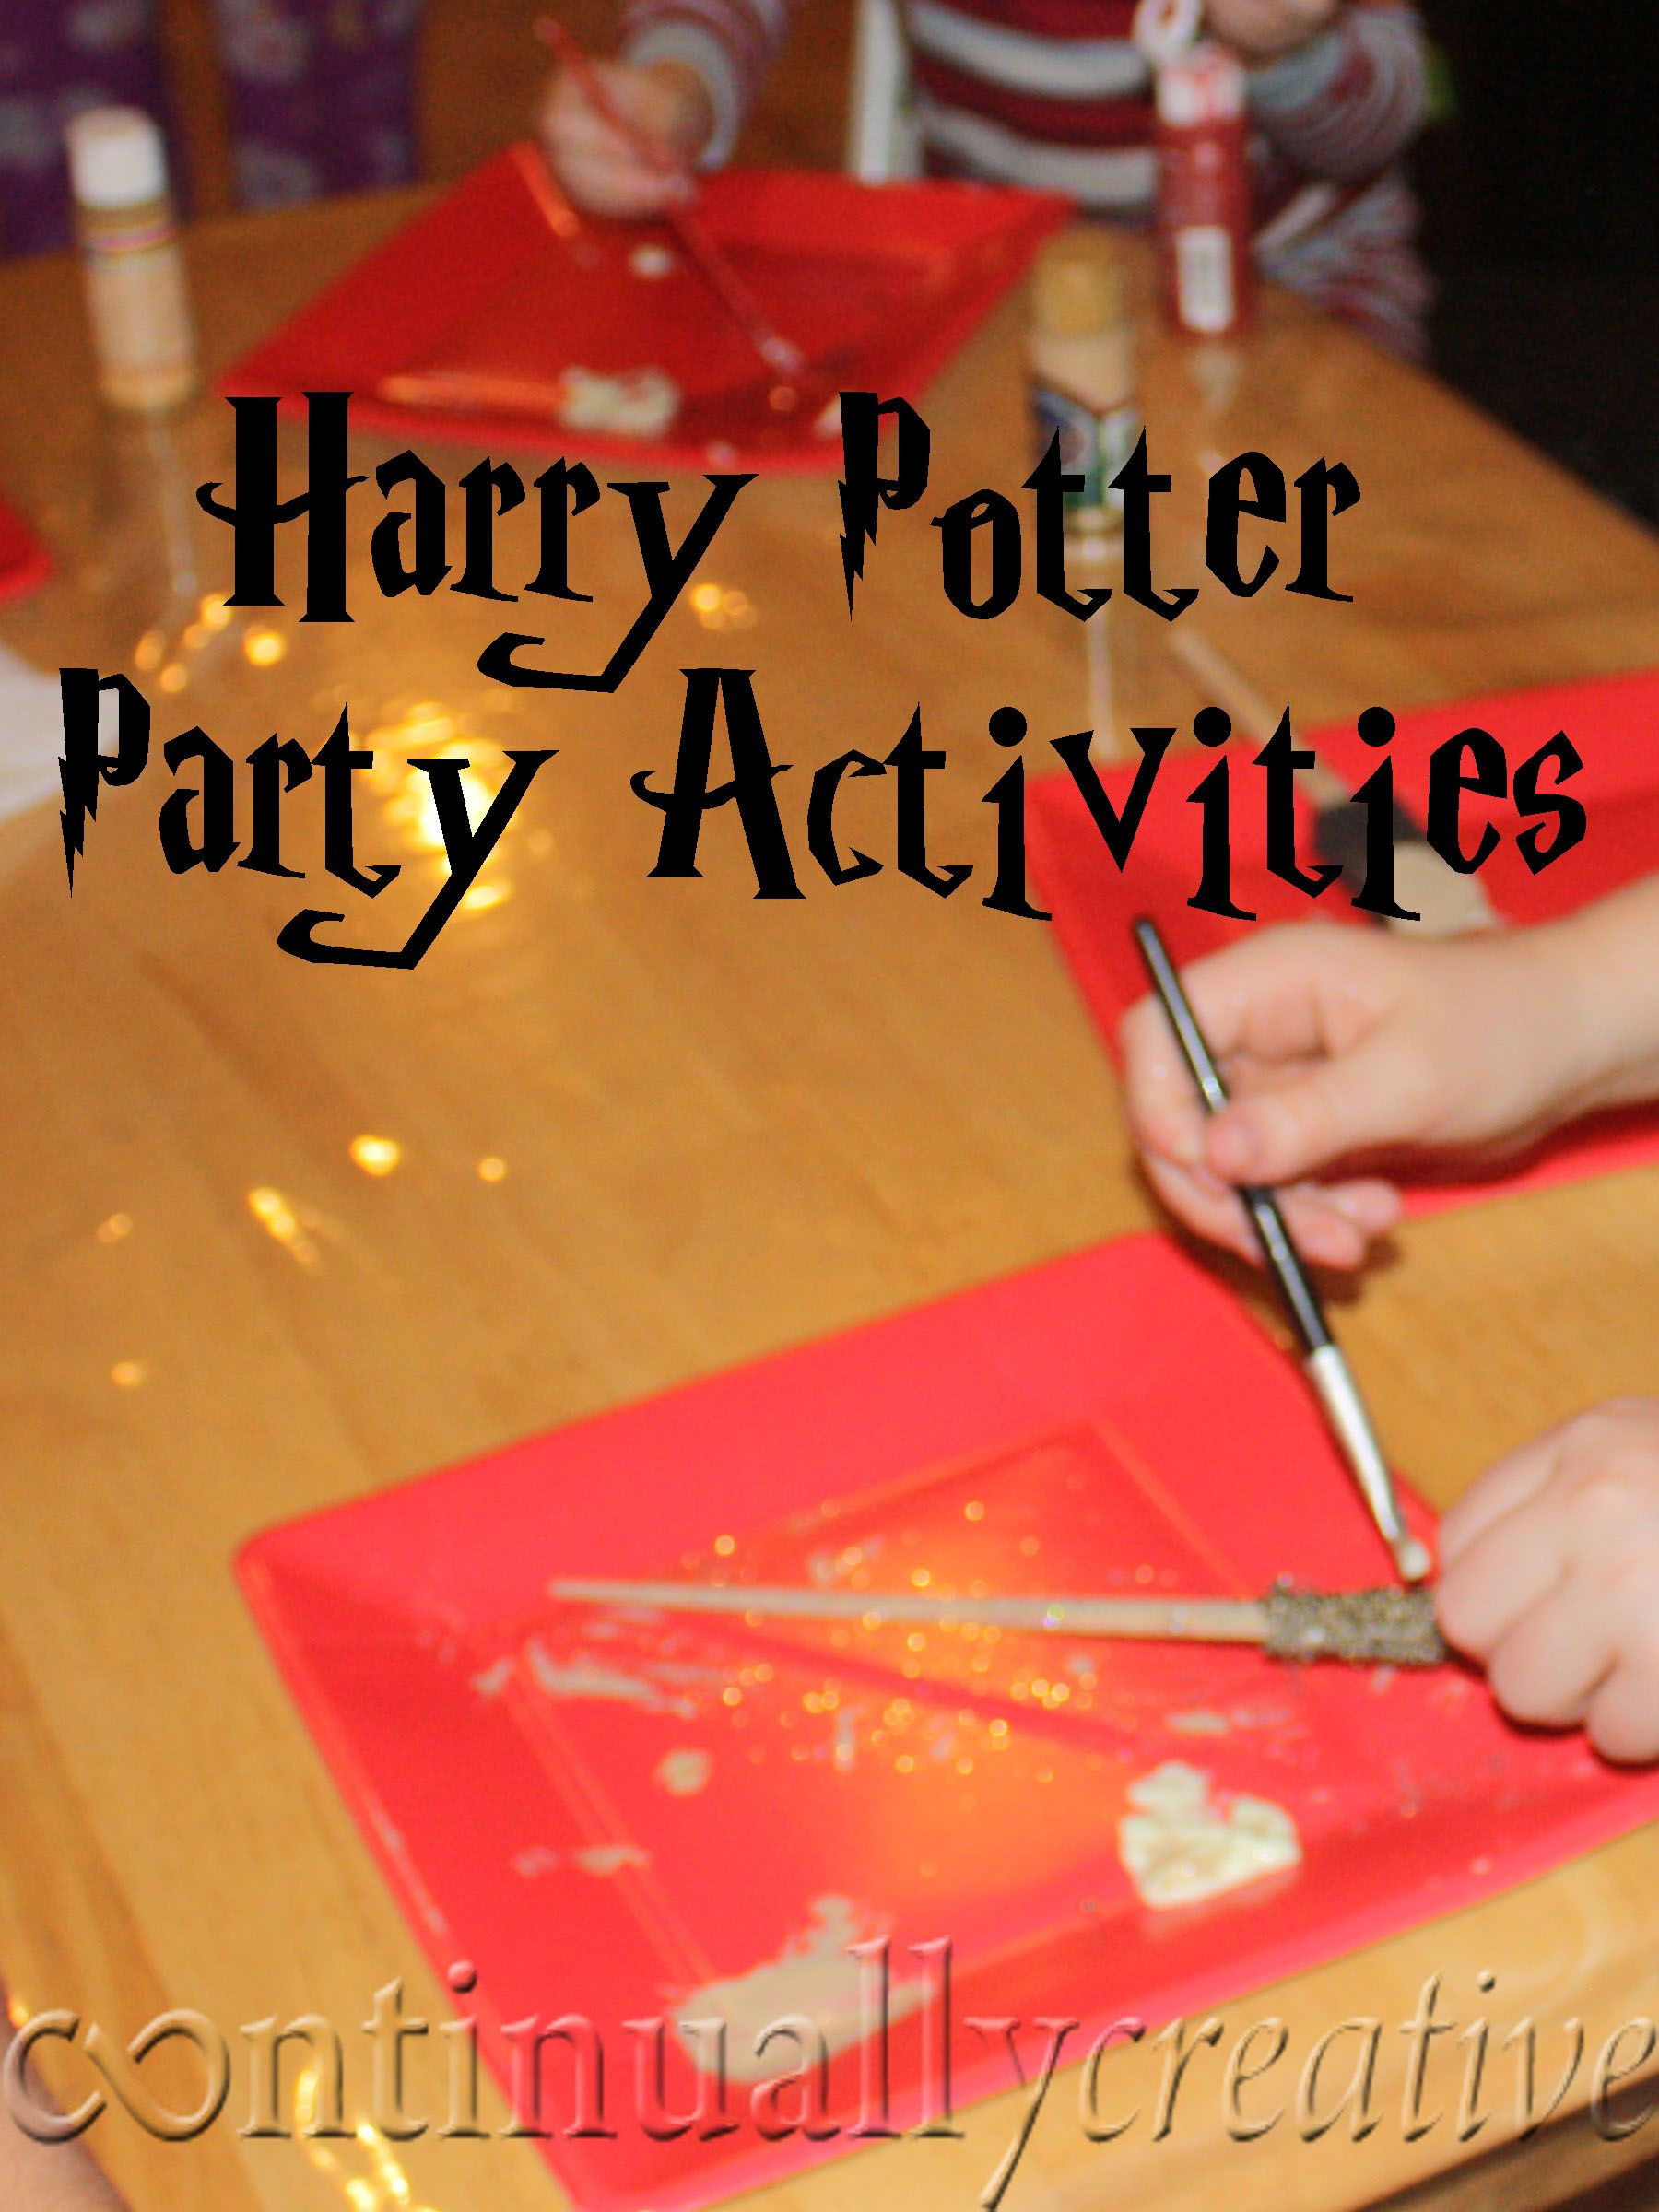 great ideas for harry potter birthday party activities i especially loved the idea how to do a. Black Bedroom Furniture Sets. Home Design Ideas